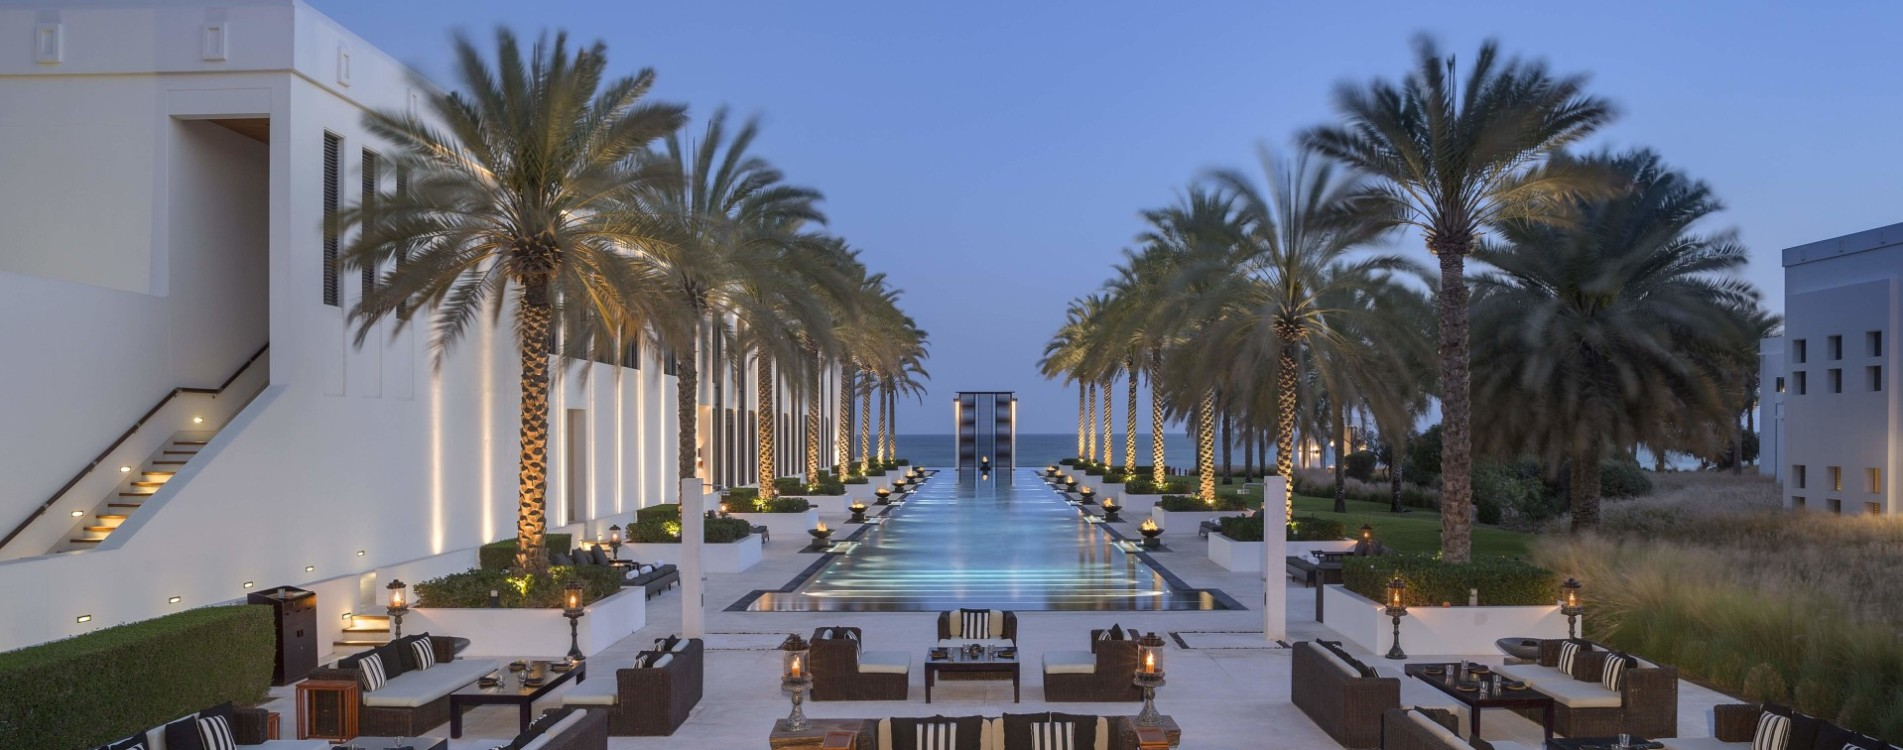 The-Chedi-Muscat-Dining-The-Long-Pool-Cabana-Oman.jpg